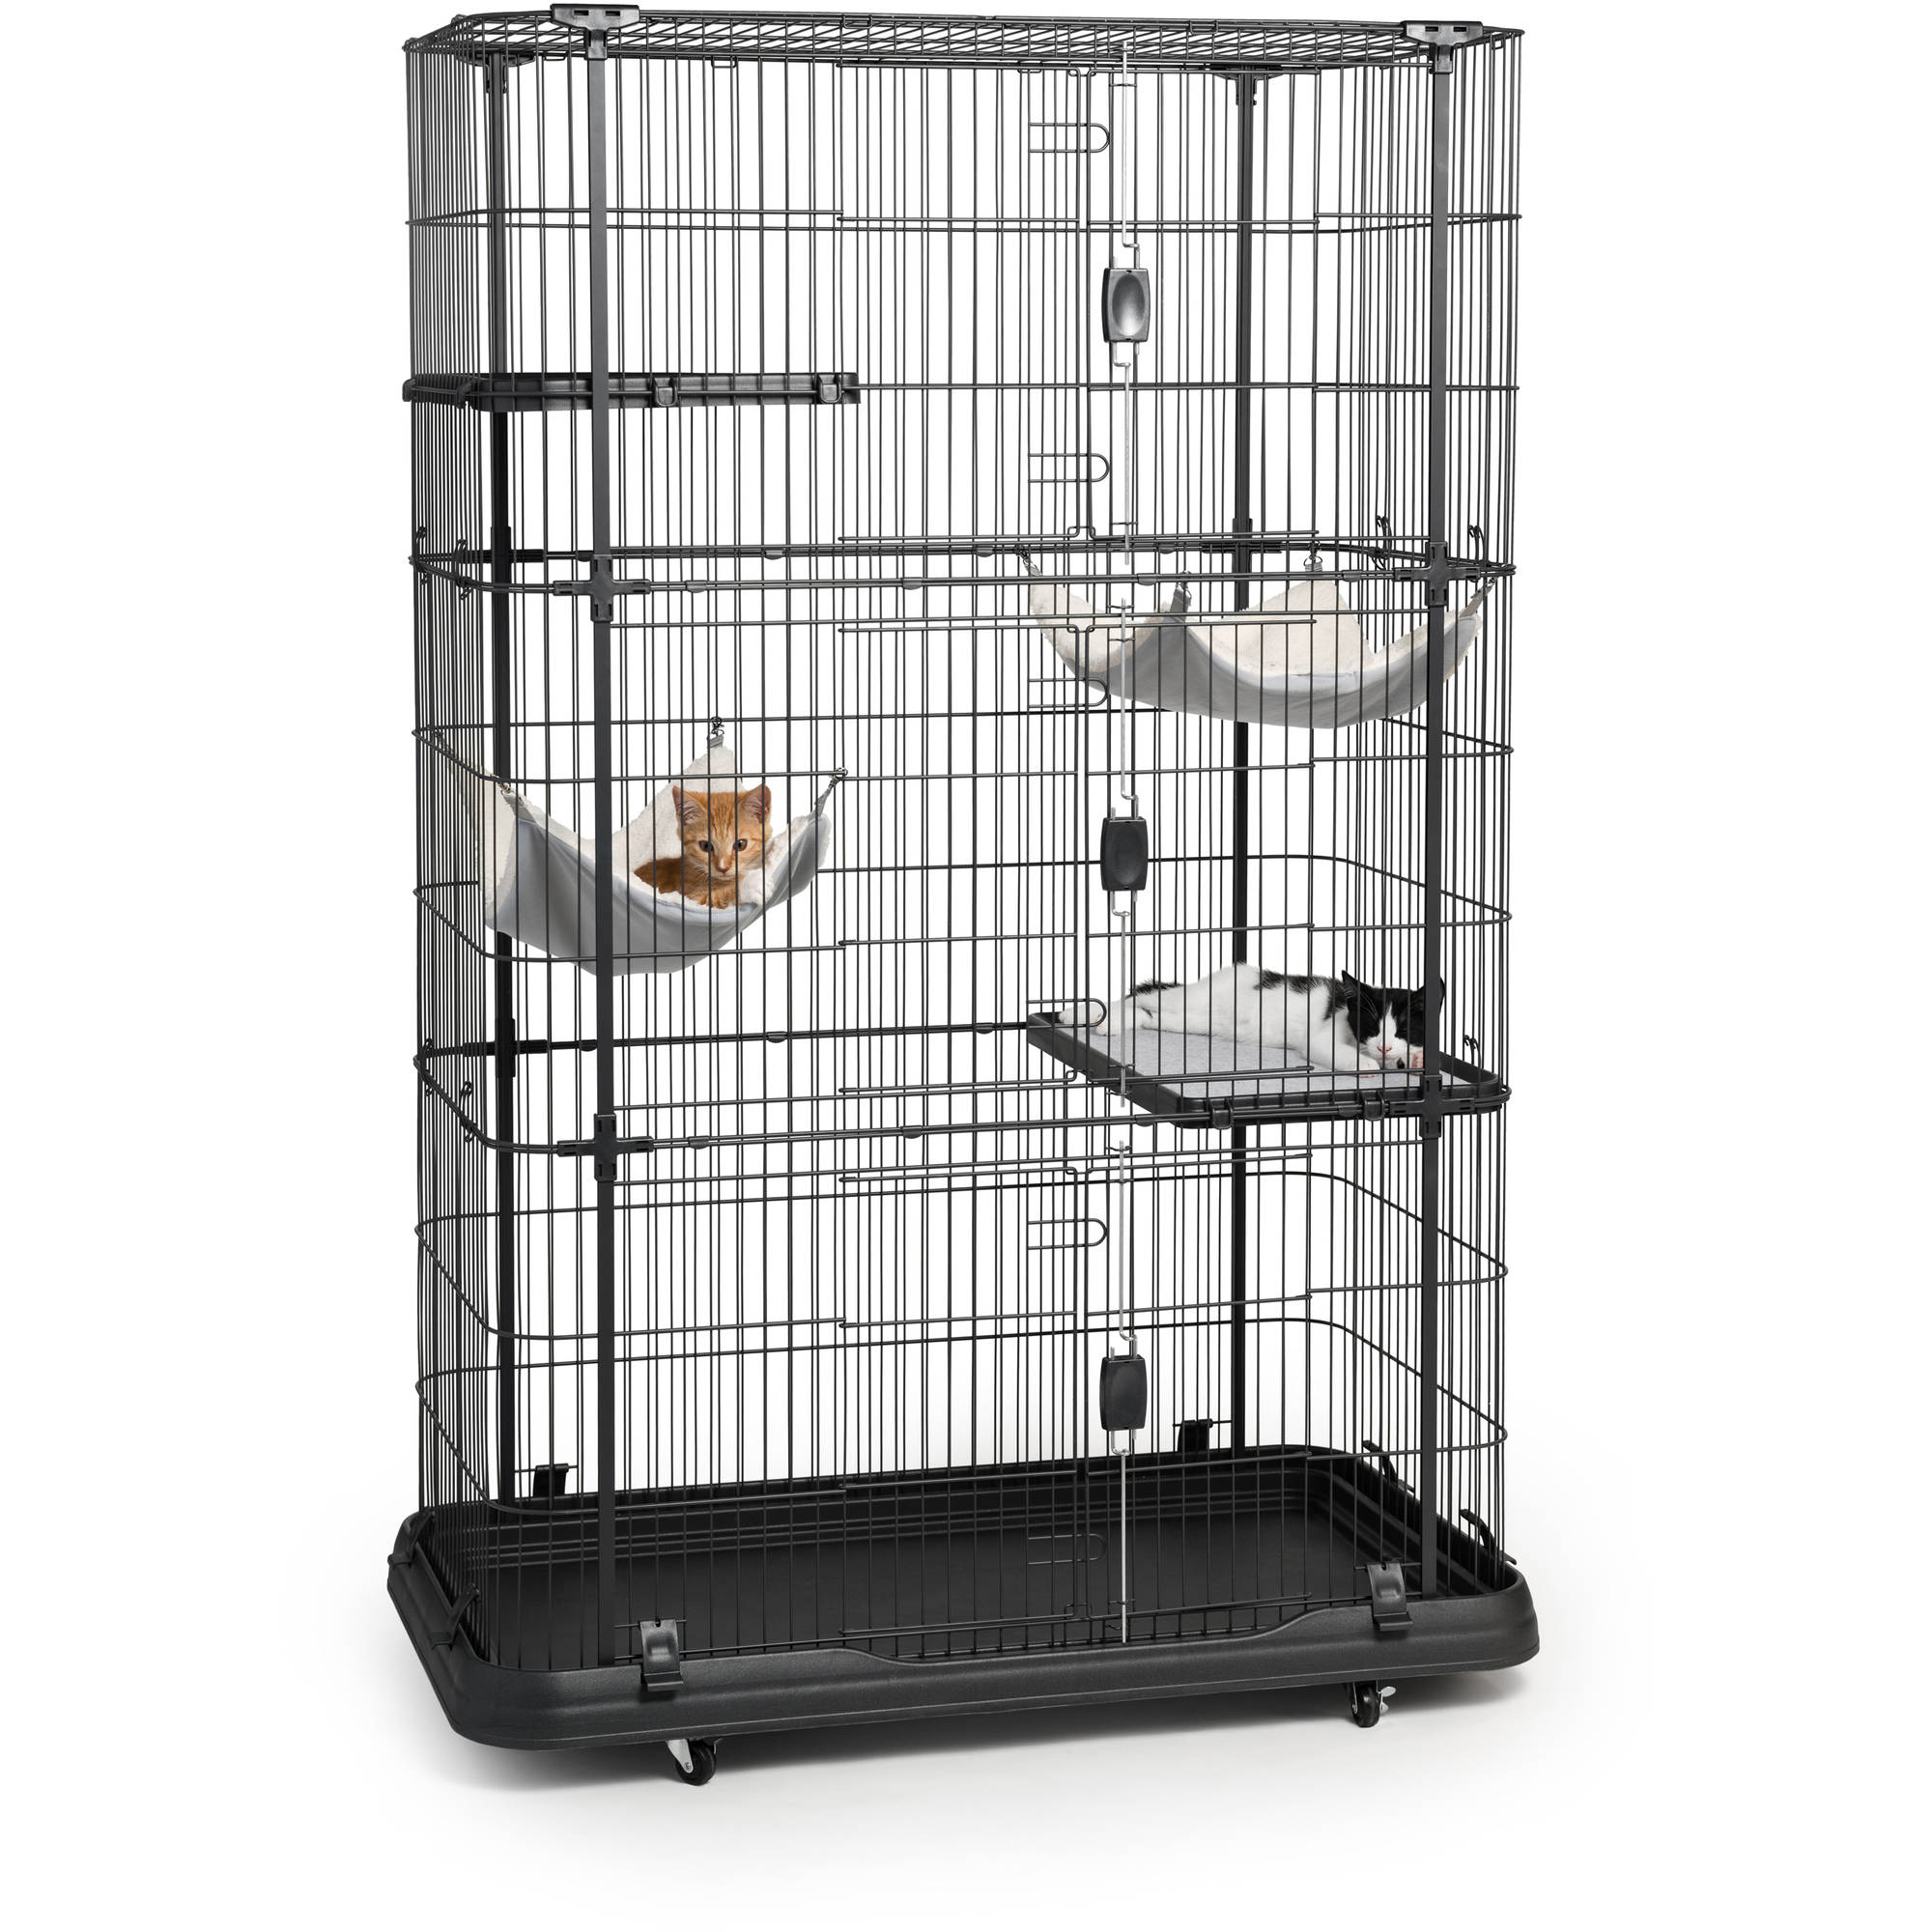 Prevue Pet Products Premium Cat Home with 4 Levels, 7500 - Walmart.com